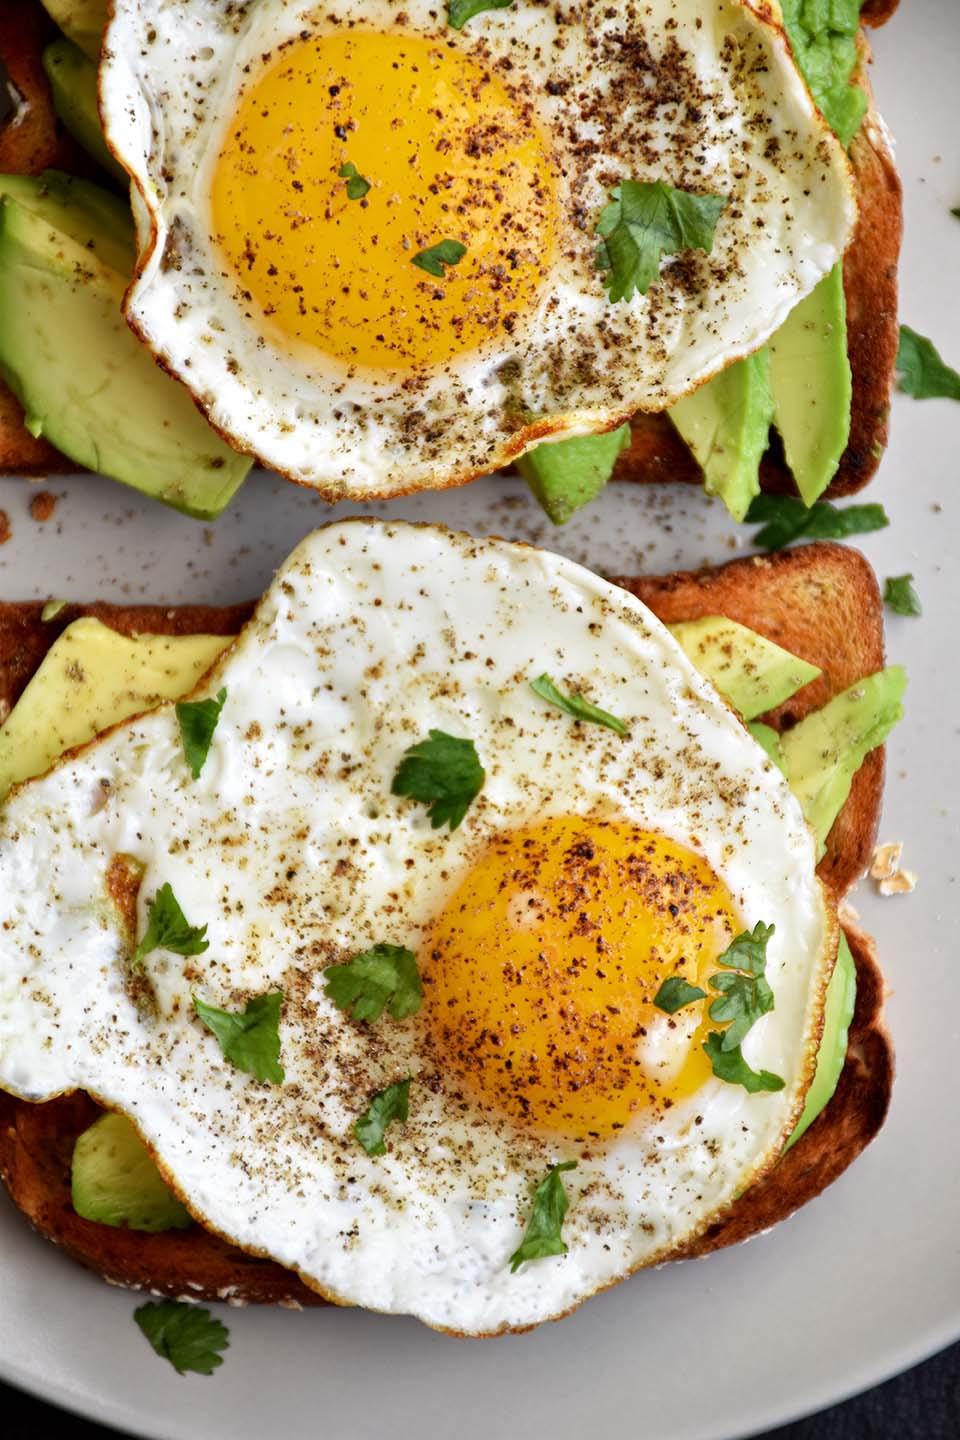 Avocado Egg Toast - Pepper Delight #pepperdelightblog #recipe #avocado #avocadoeggtoast #healthy #eggtoast #breakfast #10minutesrecipe #avocadotoast #toastrecipes #toastwithsunnysideegg #eggrecipes #proteinbreakfast